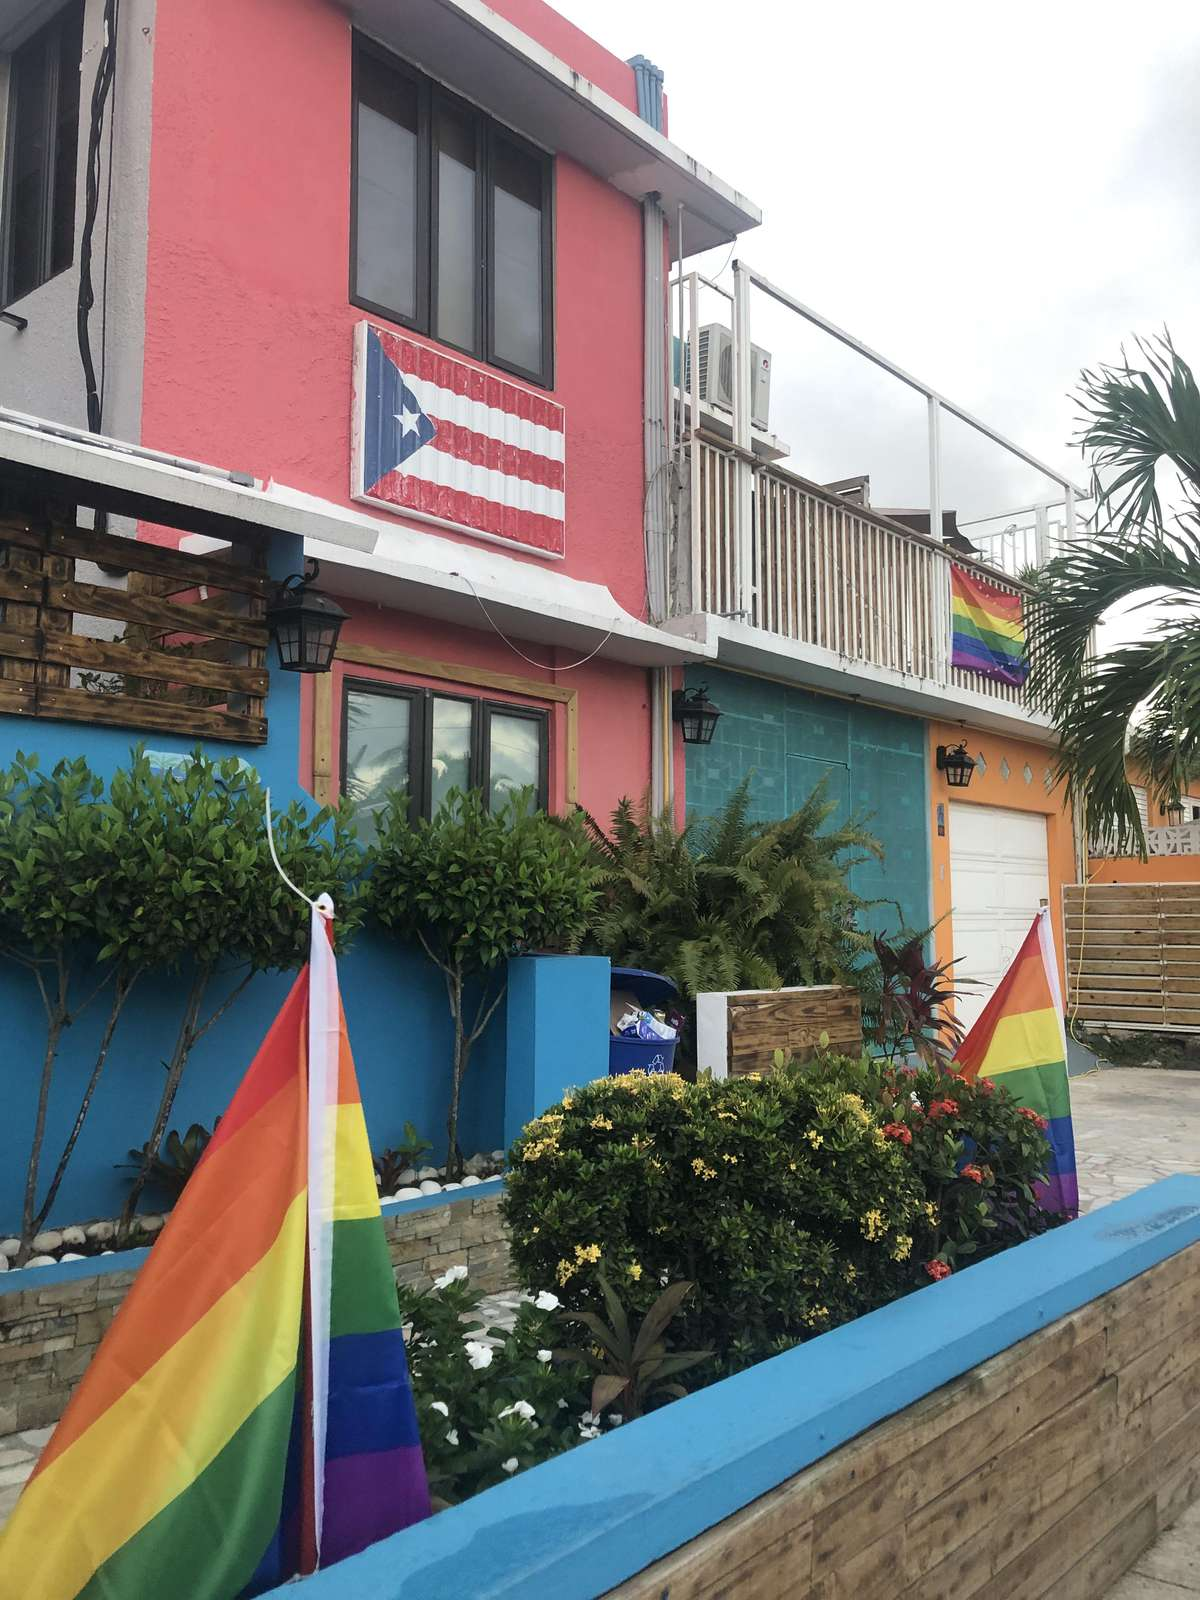 Gayest guest house in the Caribbean.  Clothing optional areas.  We are members of IGLTA, donors to GLAAD, and we organize Winter Pride Fest in Sa Juan annually